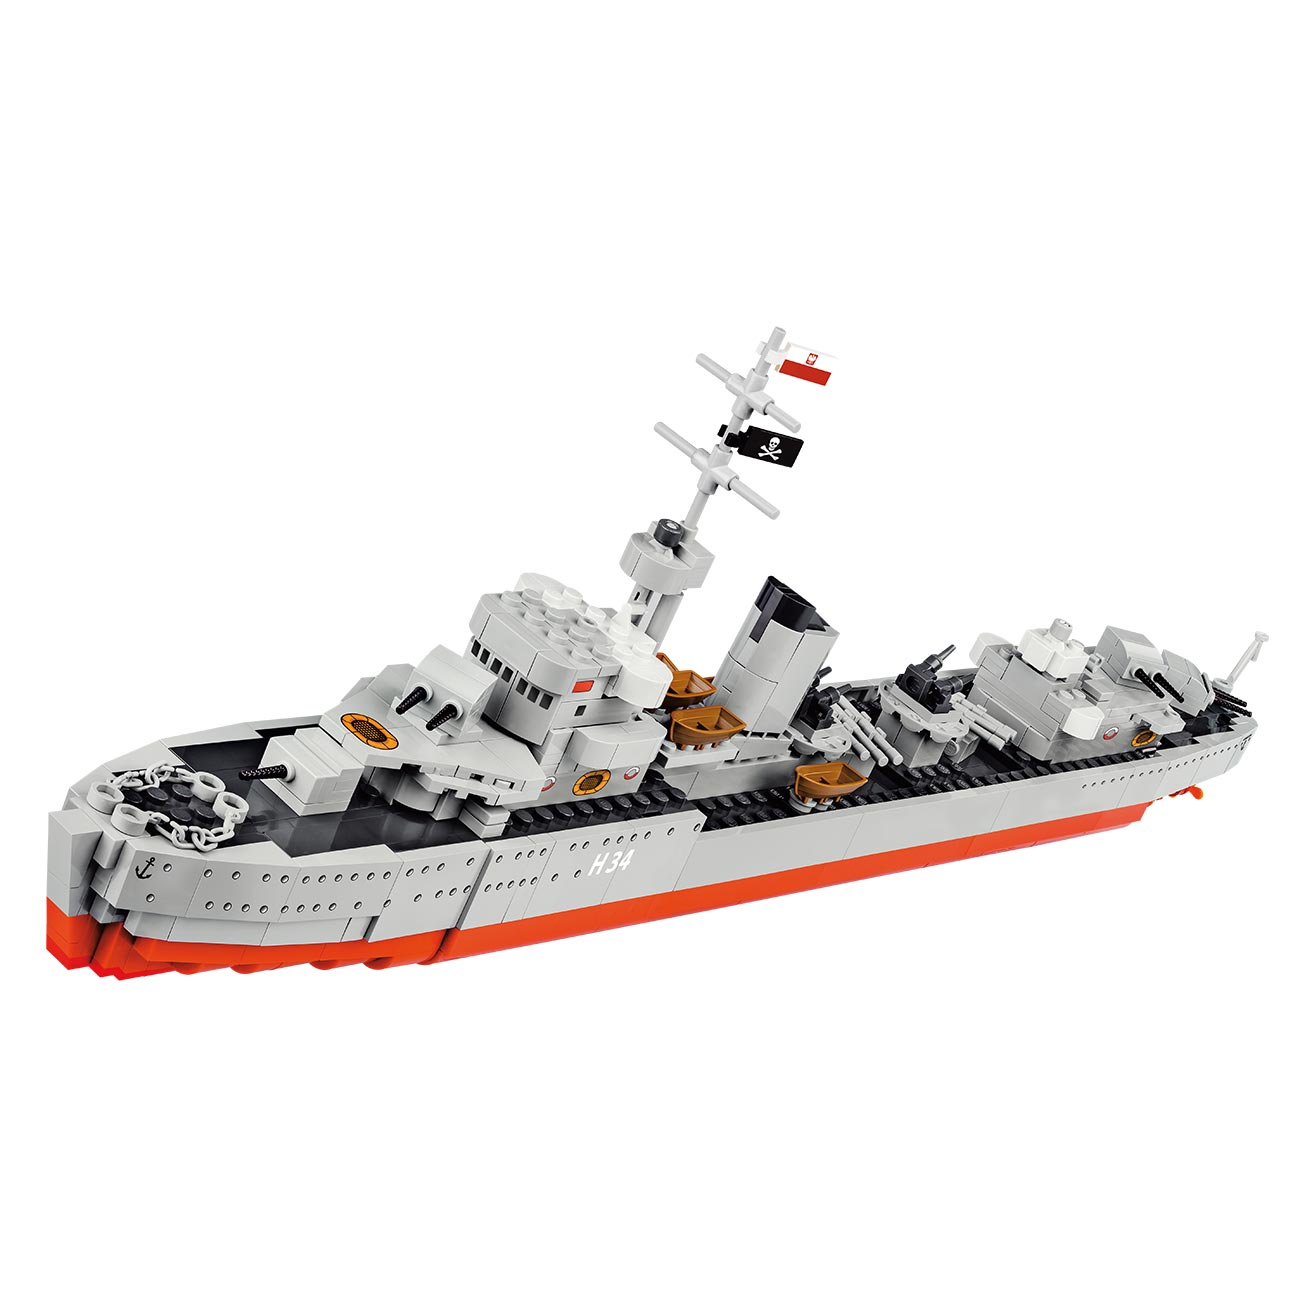 Cobi World of Warships Small Army Bausatz Schiff Orp Blyskawica 680 Teile 3080